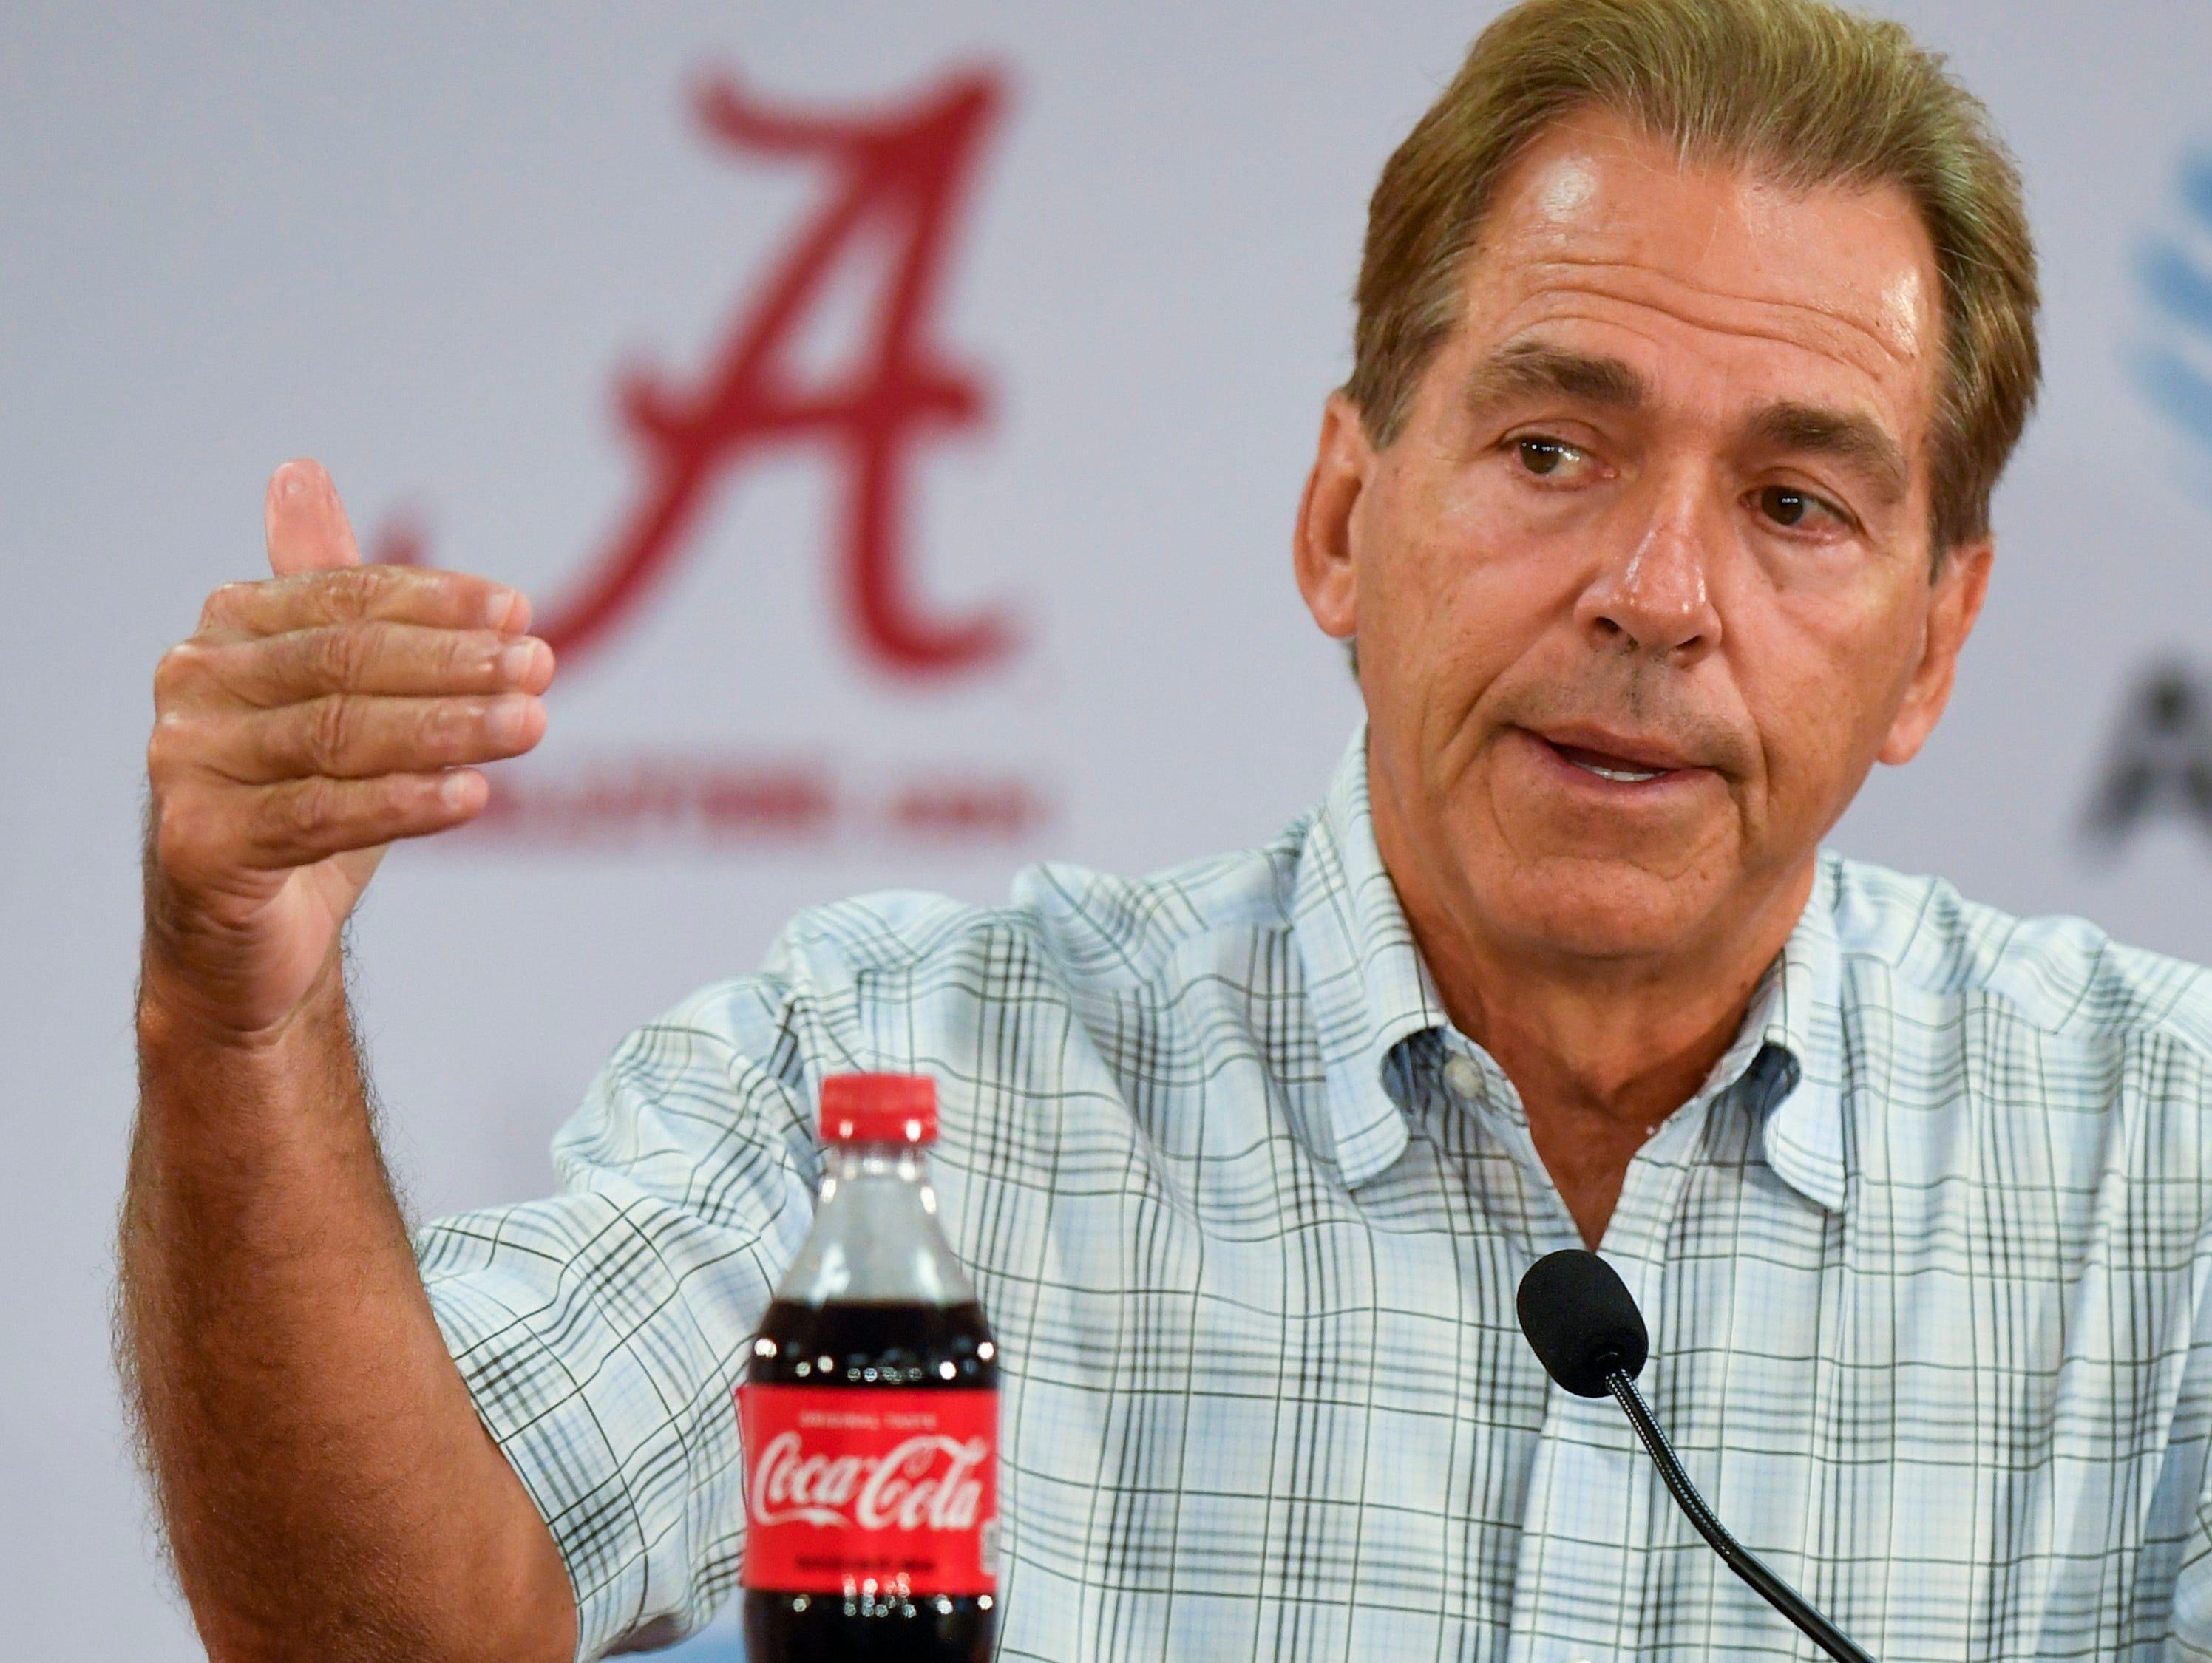 Alabama coach Nick Saban talks with the media before Fan Day on Saturday August 5, 2017 in Tuscaloosa, Ala.